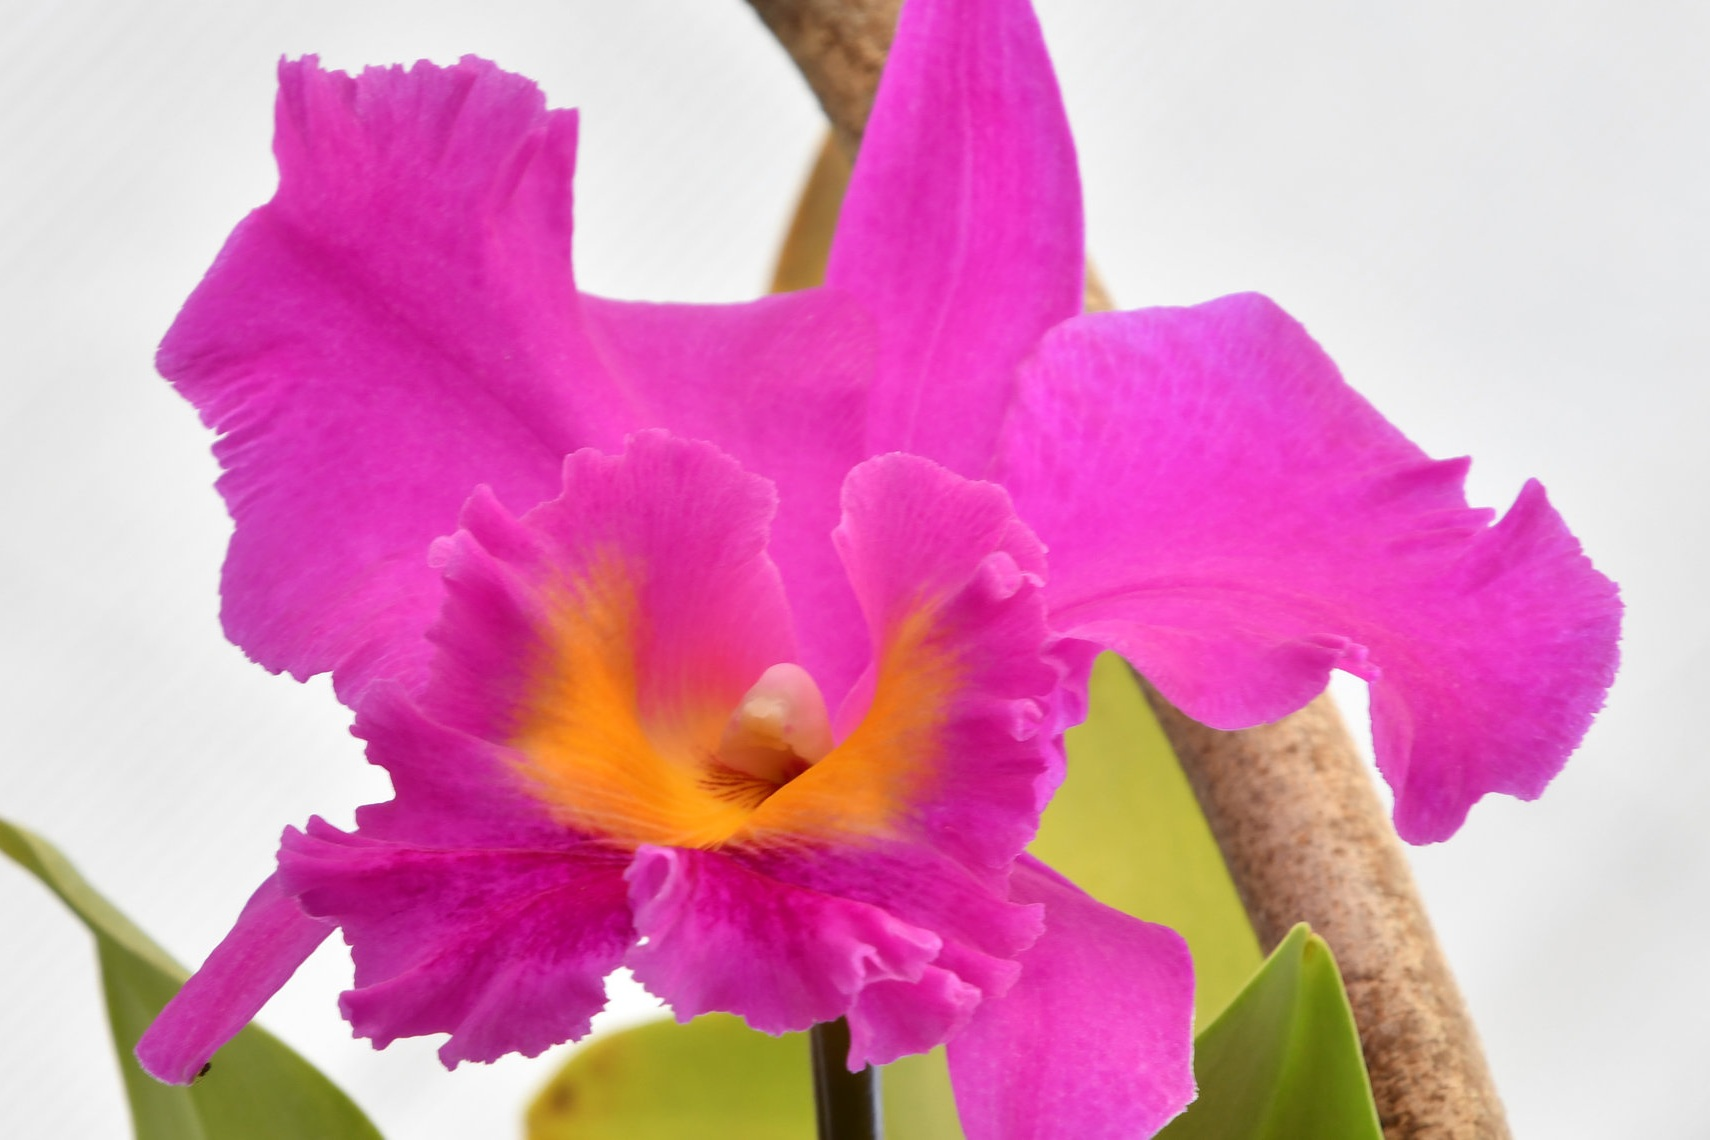 """Cattleya - Known as the """"Queen of Orchids,"""" no other type of orchid competes with the wide range of colors, shapes, fantastic scents, and sizes."""